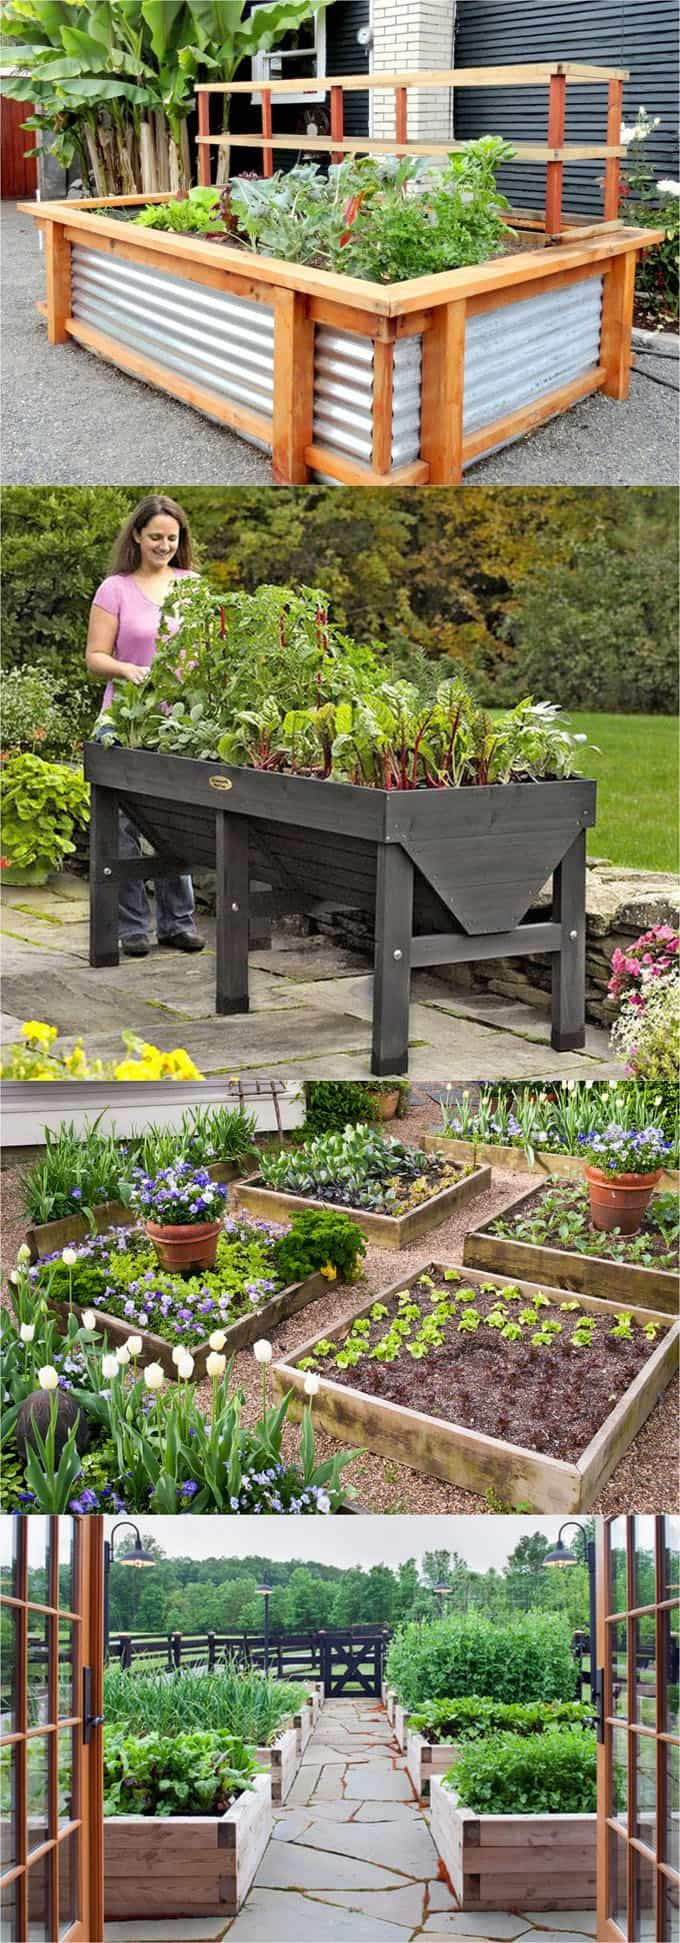 All About Diy Raised Bed Gardens – Part 1 Building 400 x 300